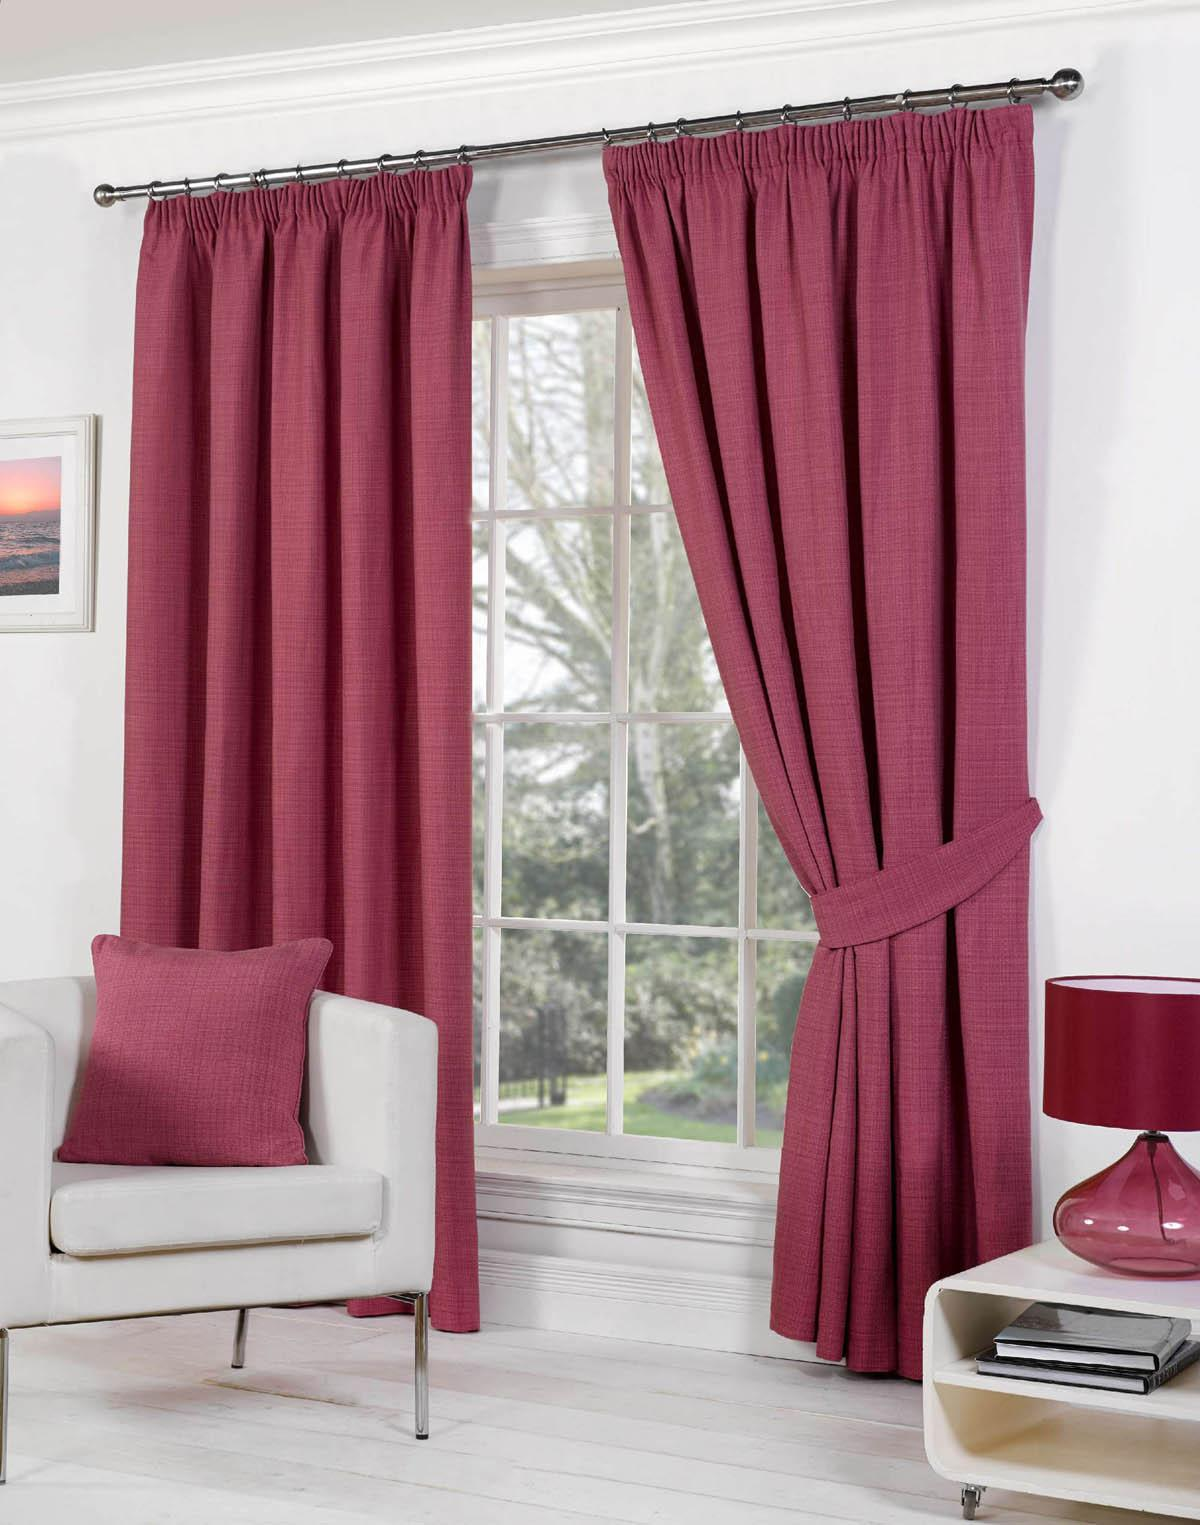 Raspberry Rome Ready Made Lined Curtains